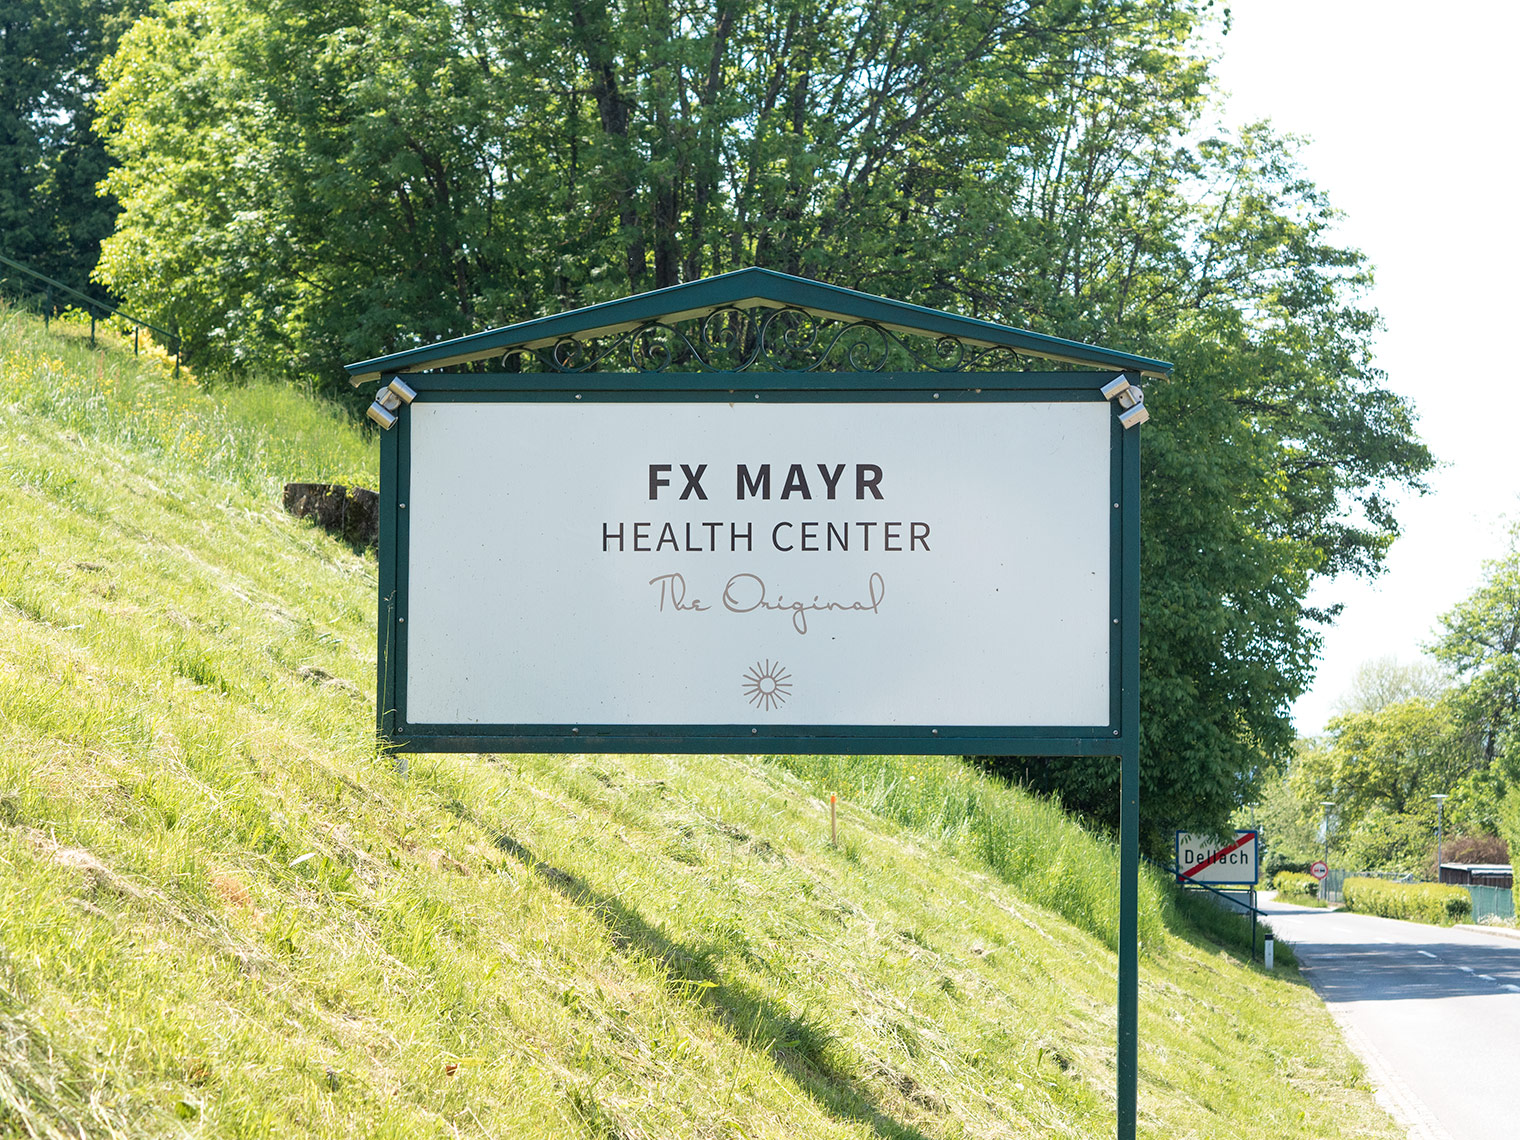 Day by day review of The Original FX Mayr clinic in Austria by Chic Journal